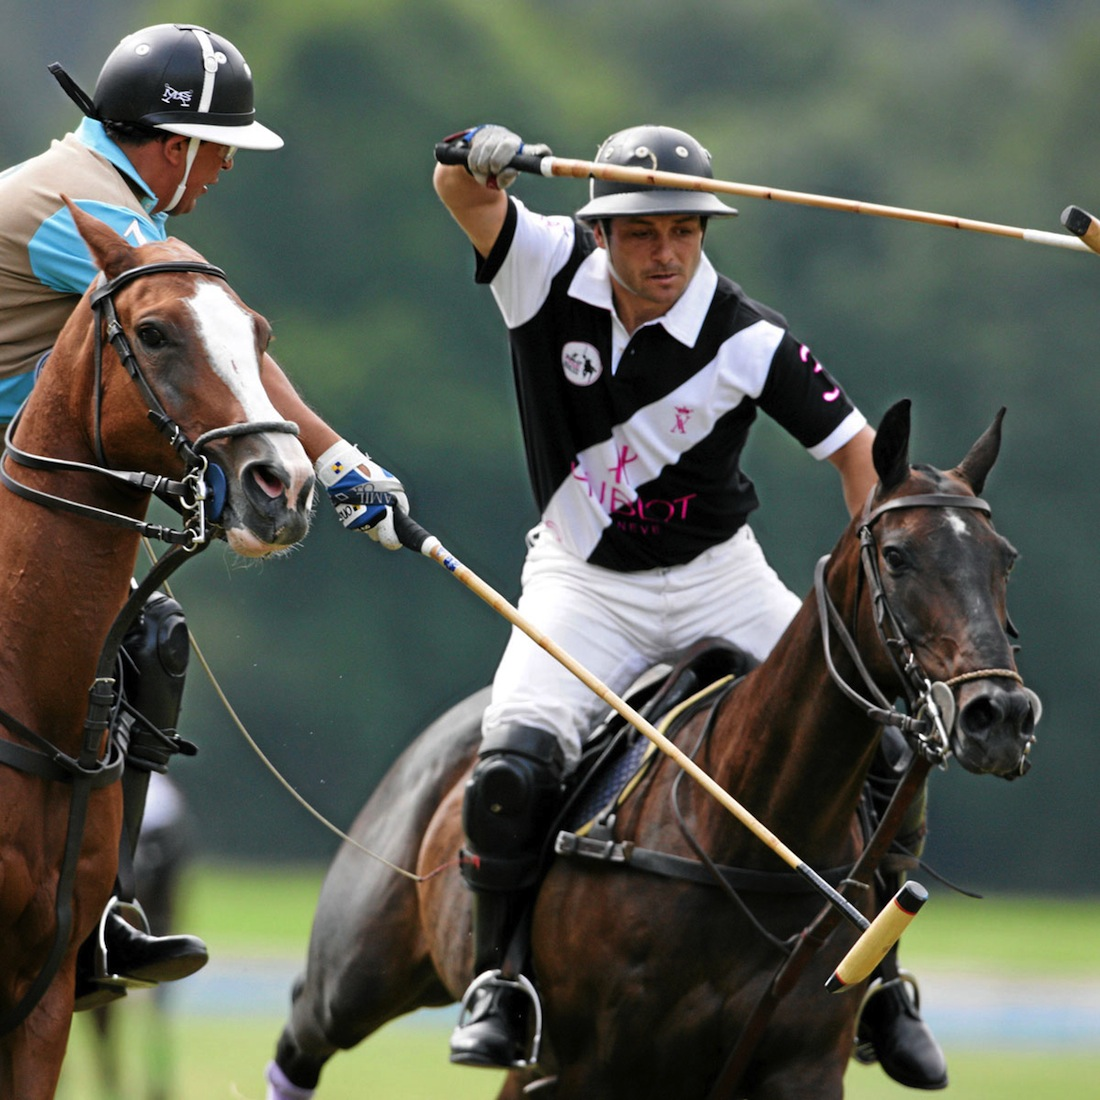 Hublot-Polo-gold-cup-2011-1